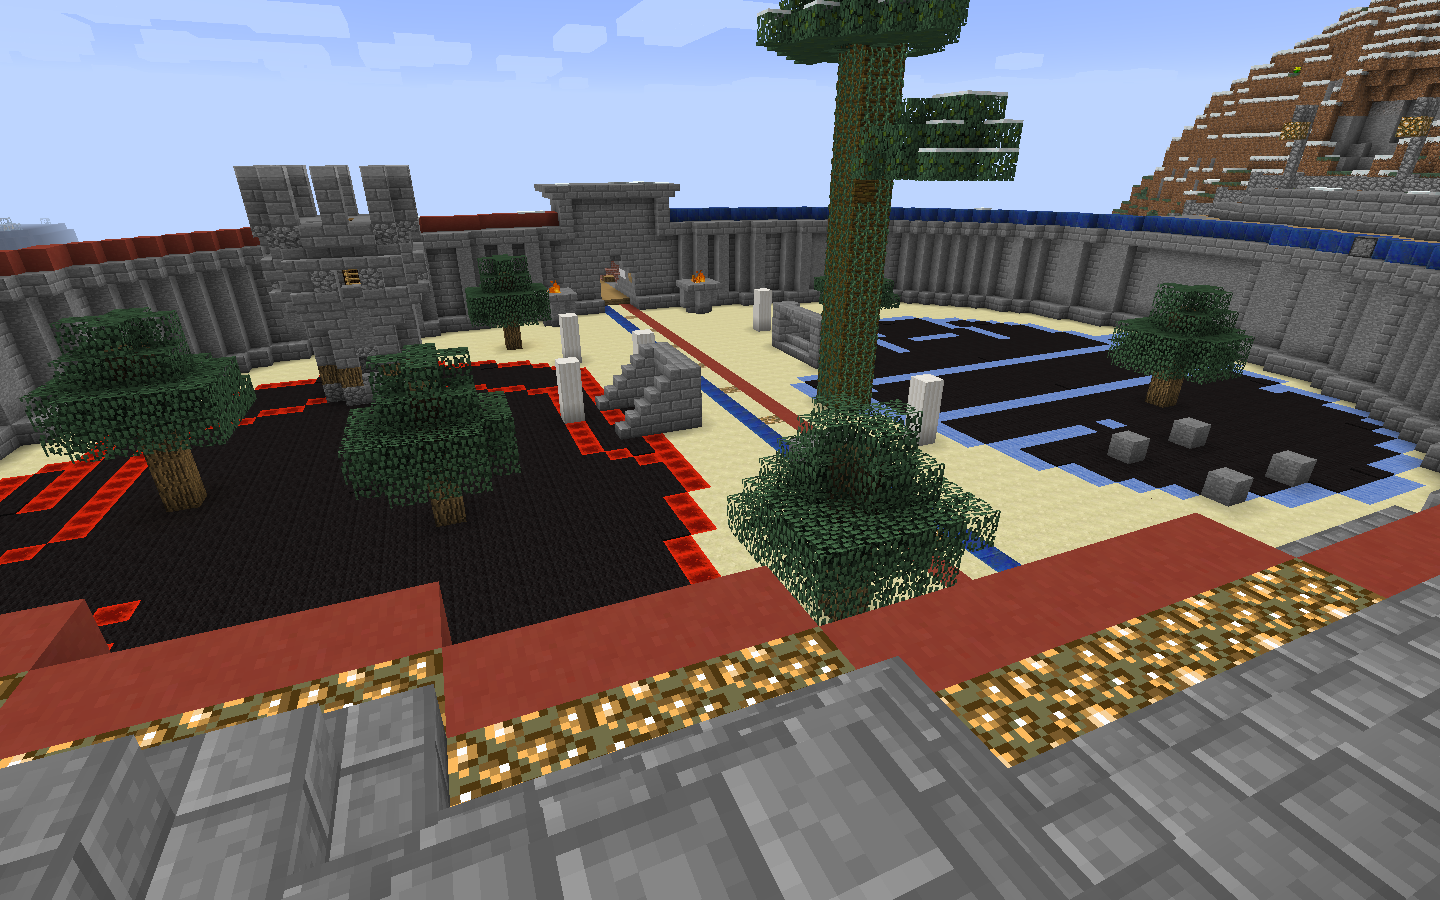 The PVP arena